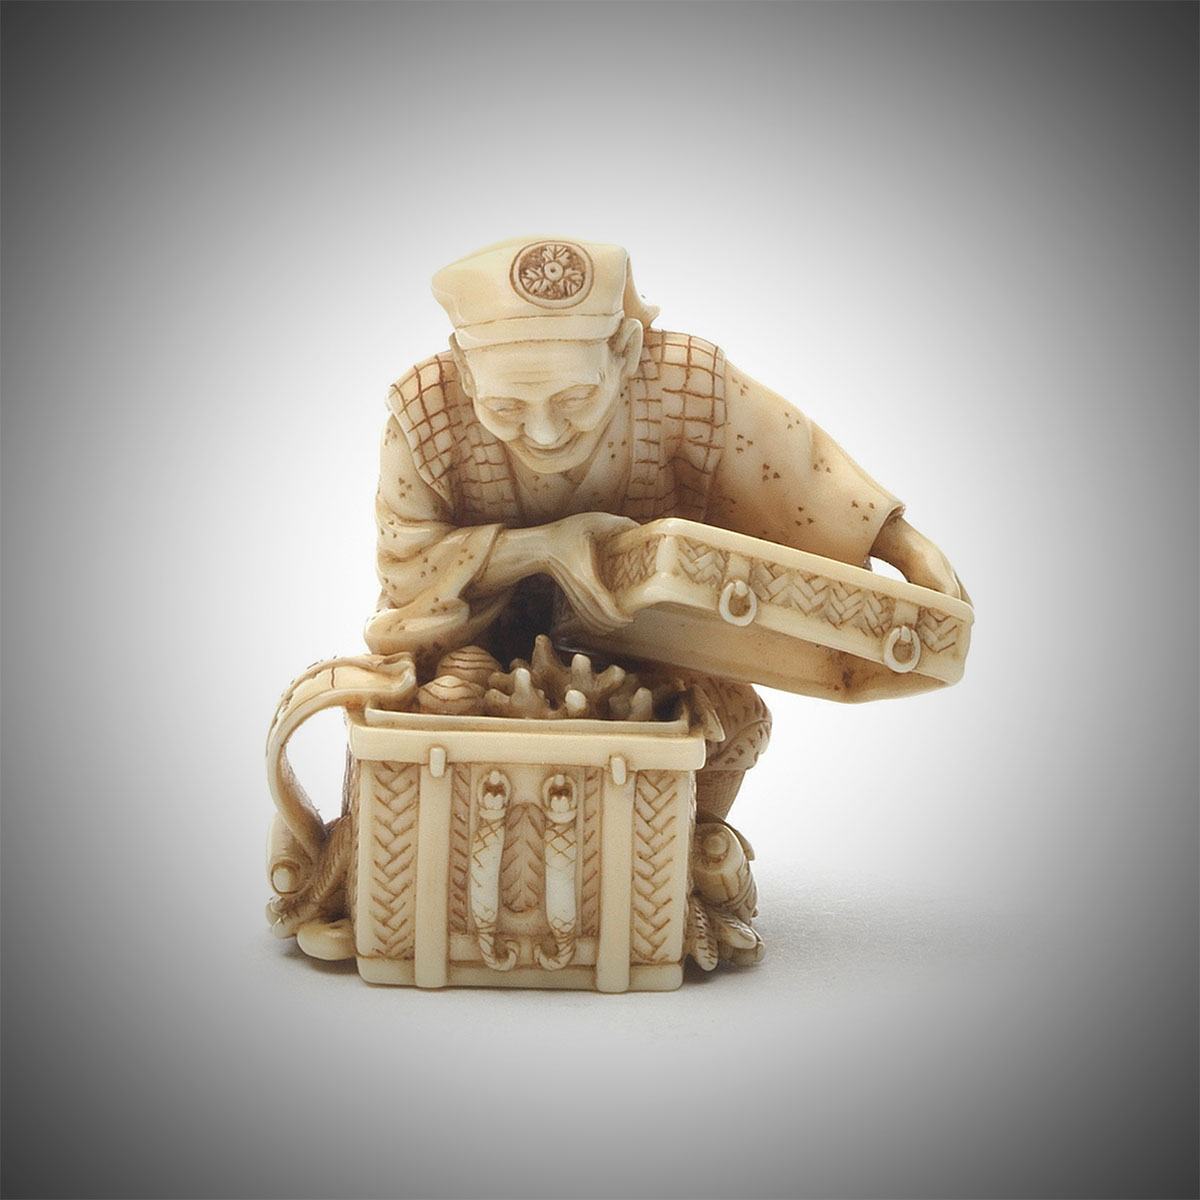 Small Ivory Netsuke of the Good Farmer from 'The Tongue Cut Sparrow' Story by Morita Soko, MR3343_v1